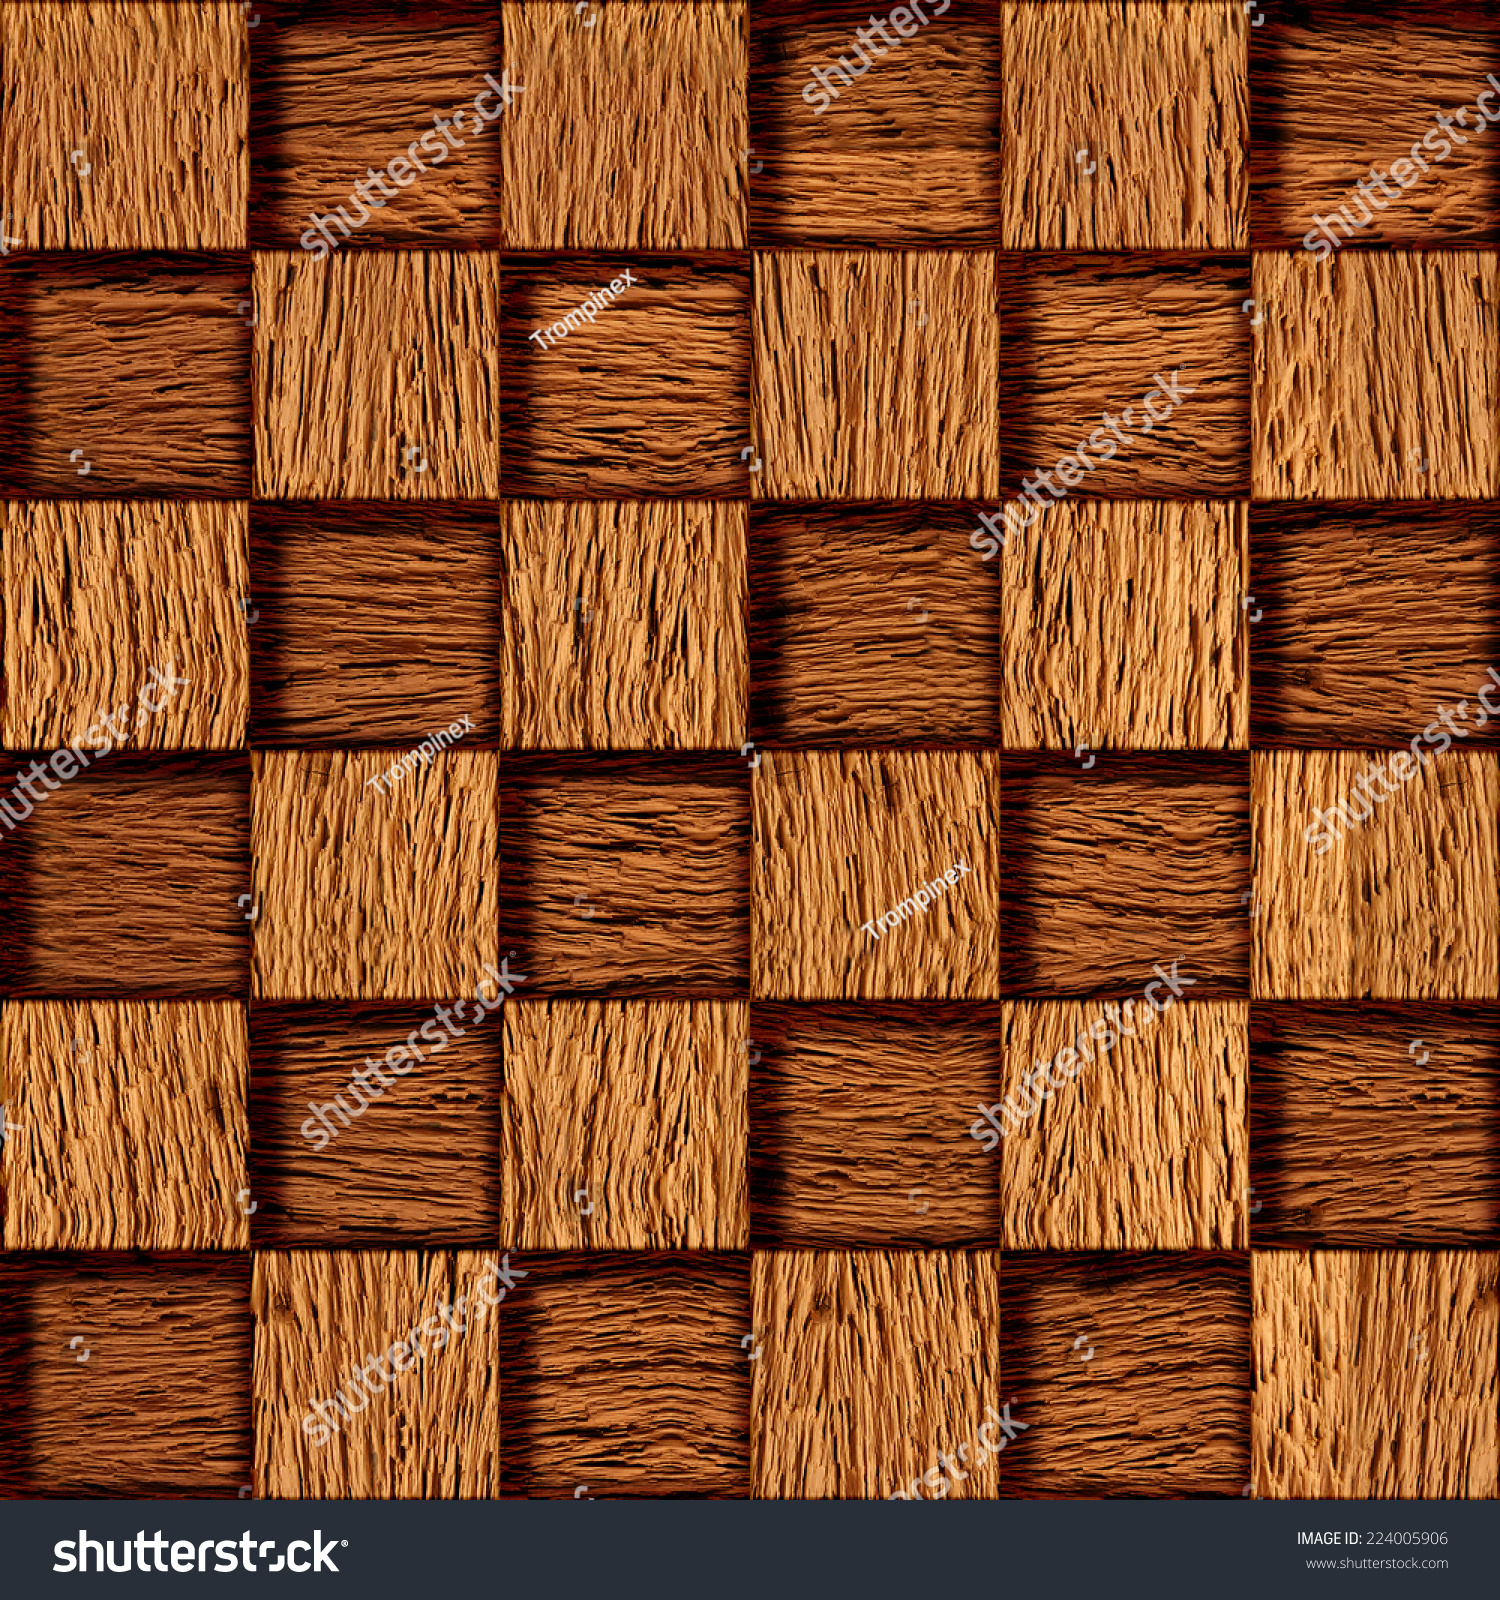 Abstract wooden texture seamless background paneling stock